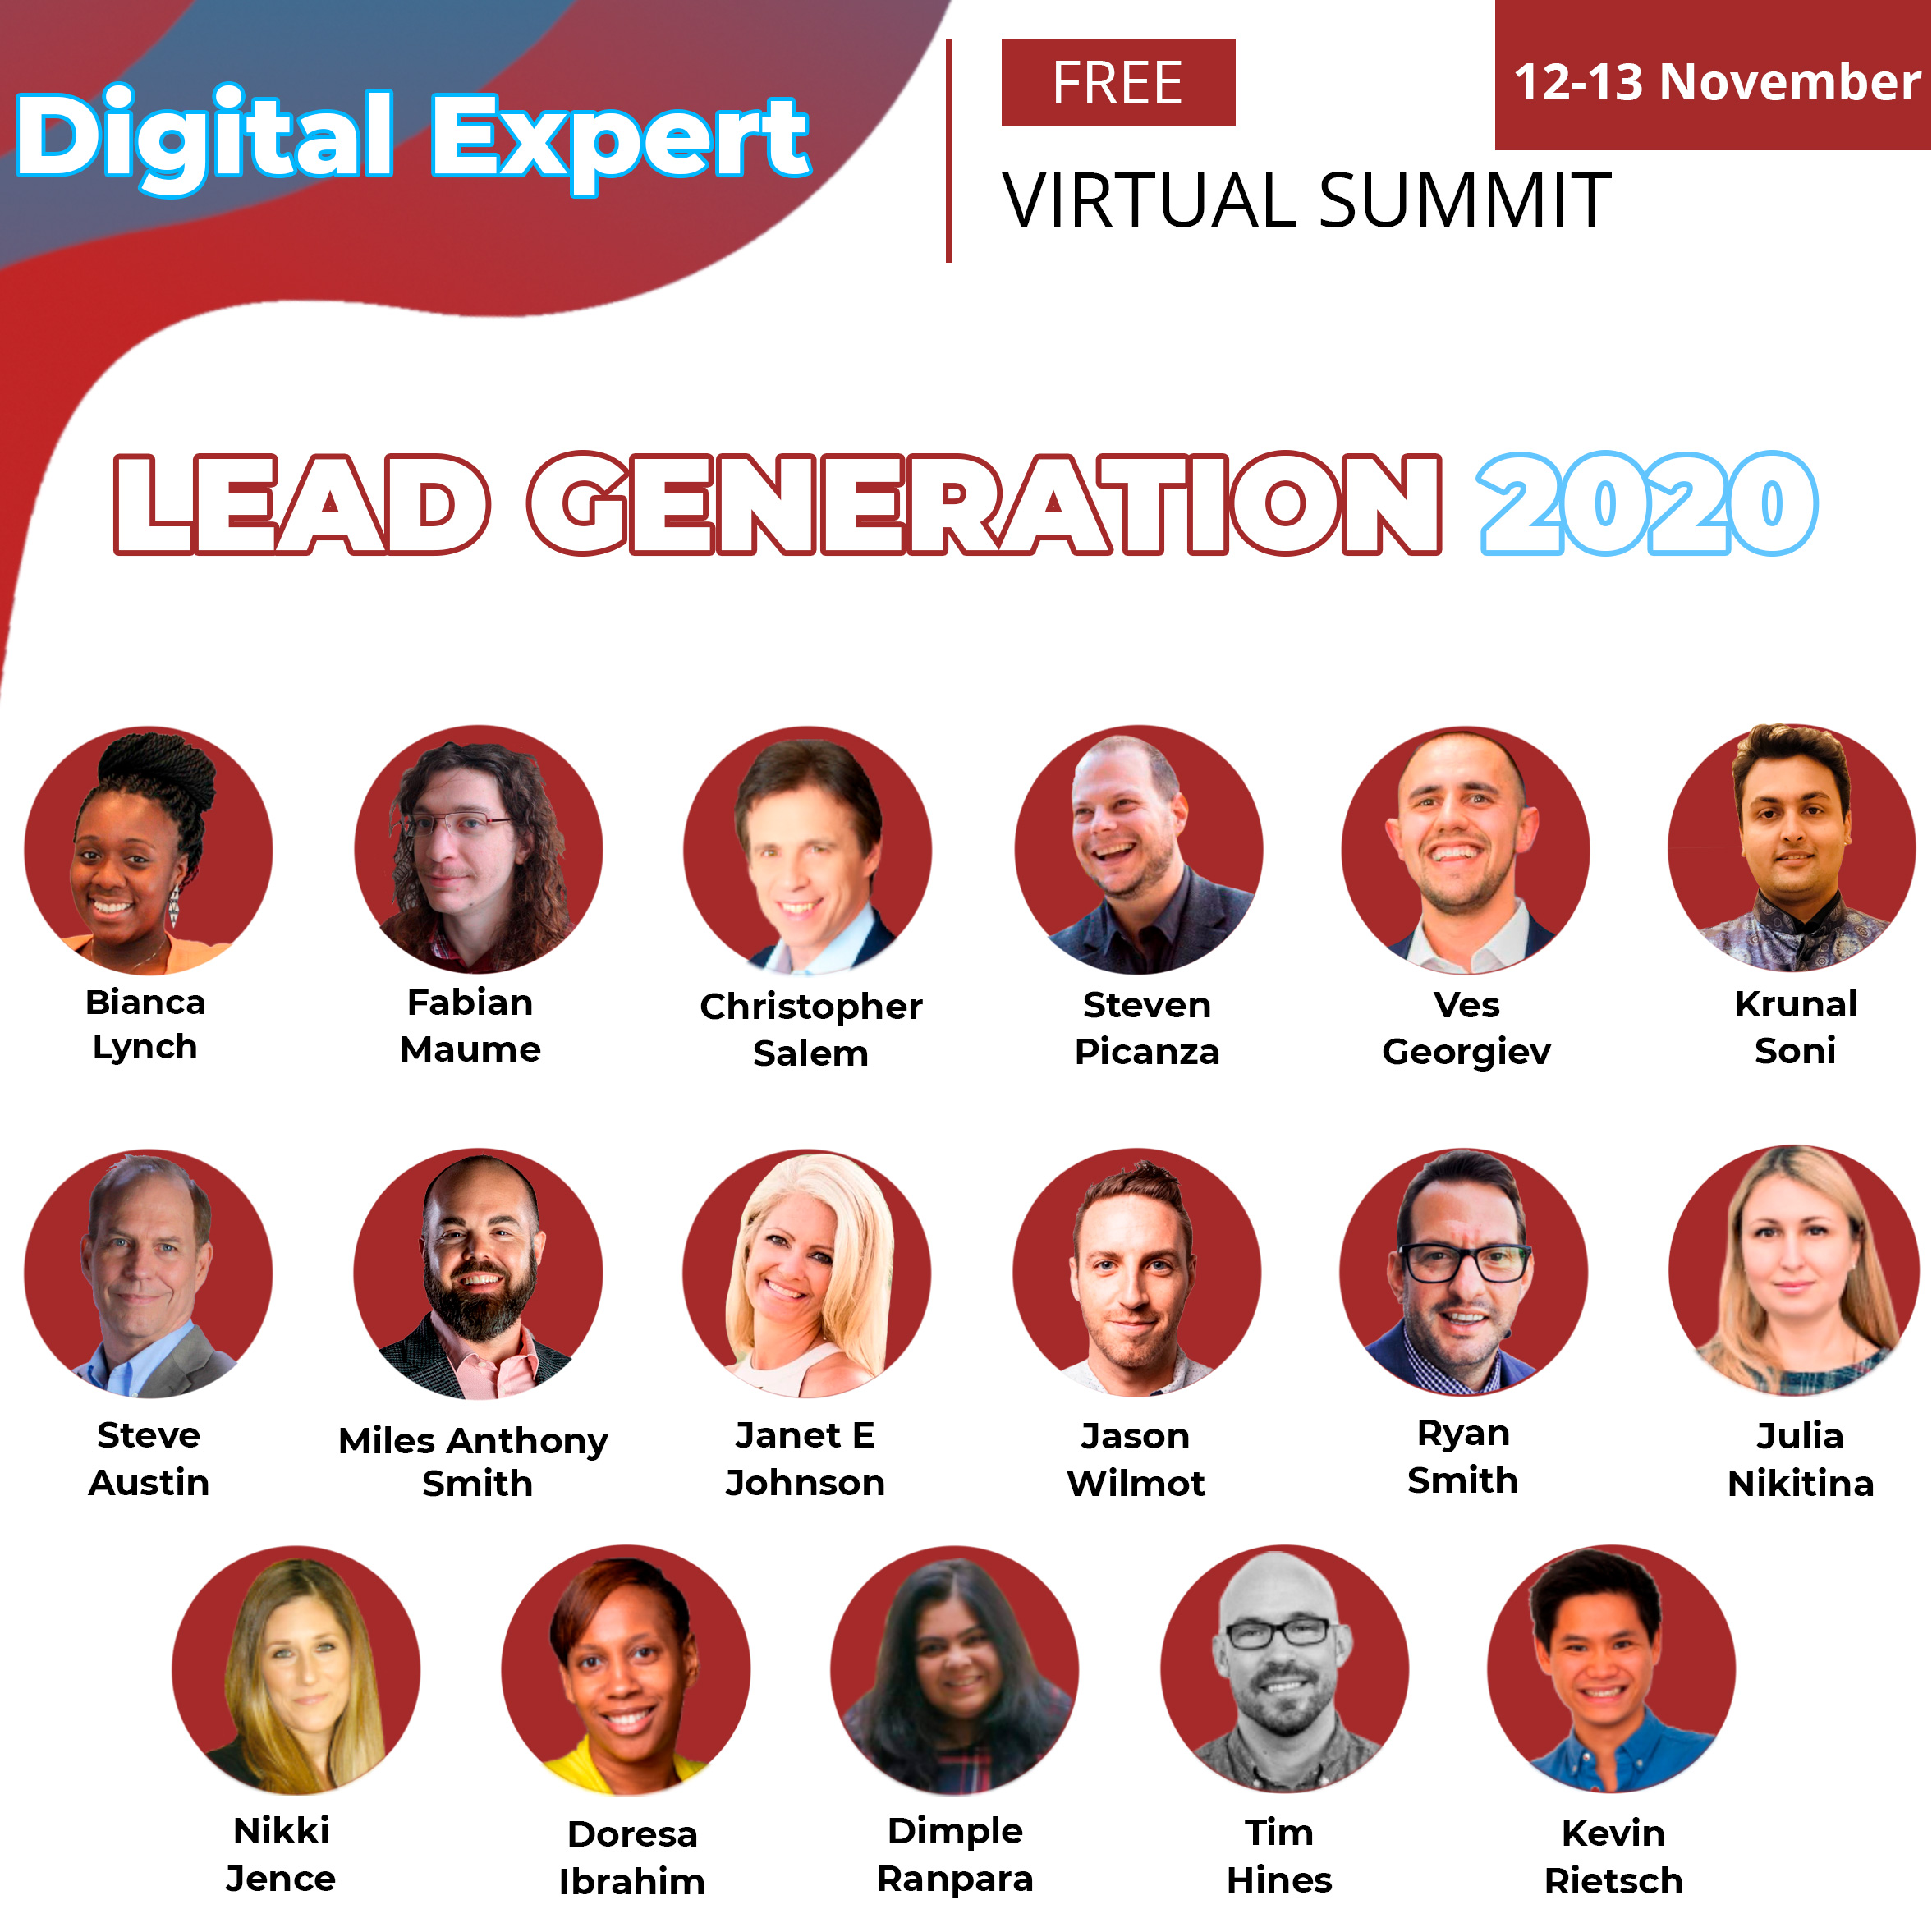 Virtual Summit